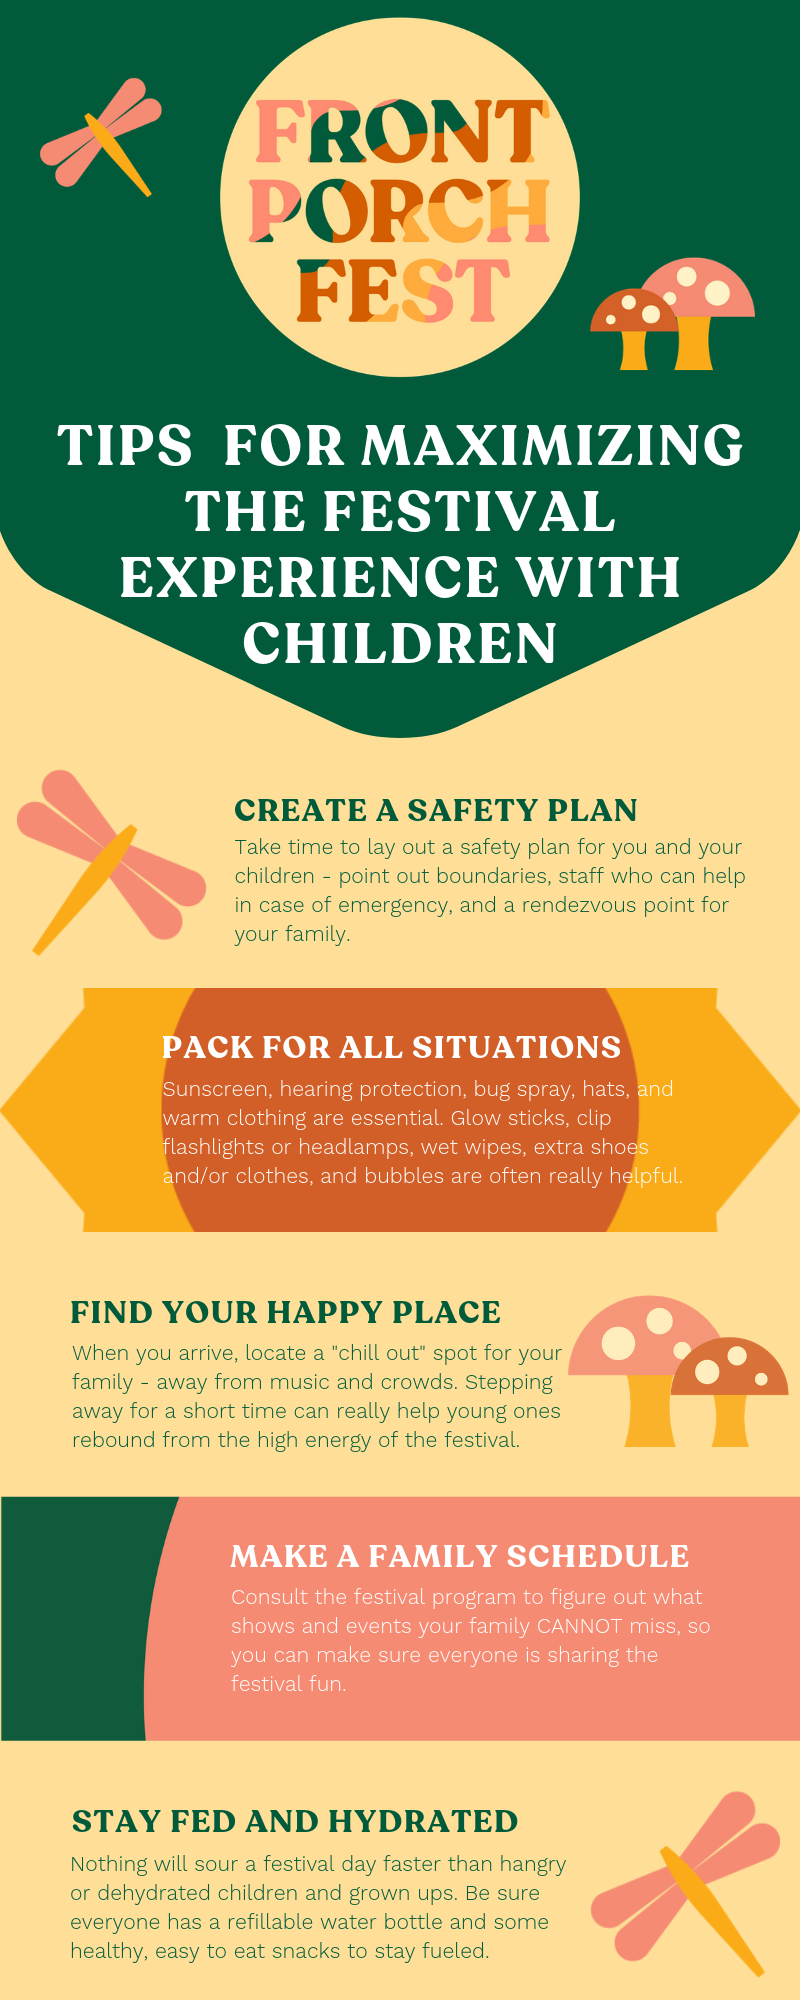 Tips for maximizing your festival experience with children (1).png